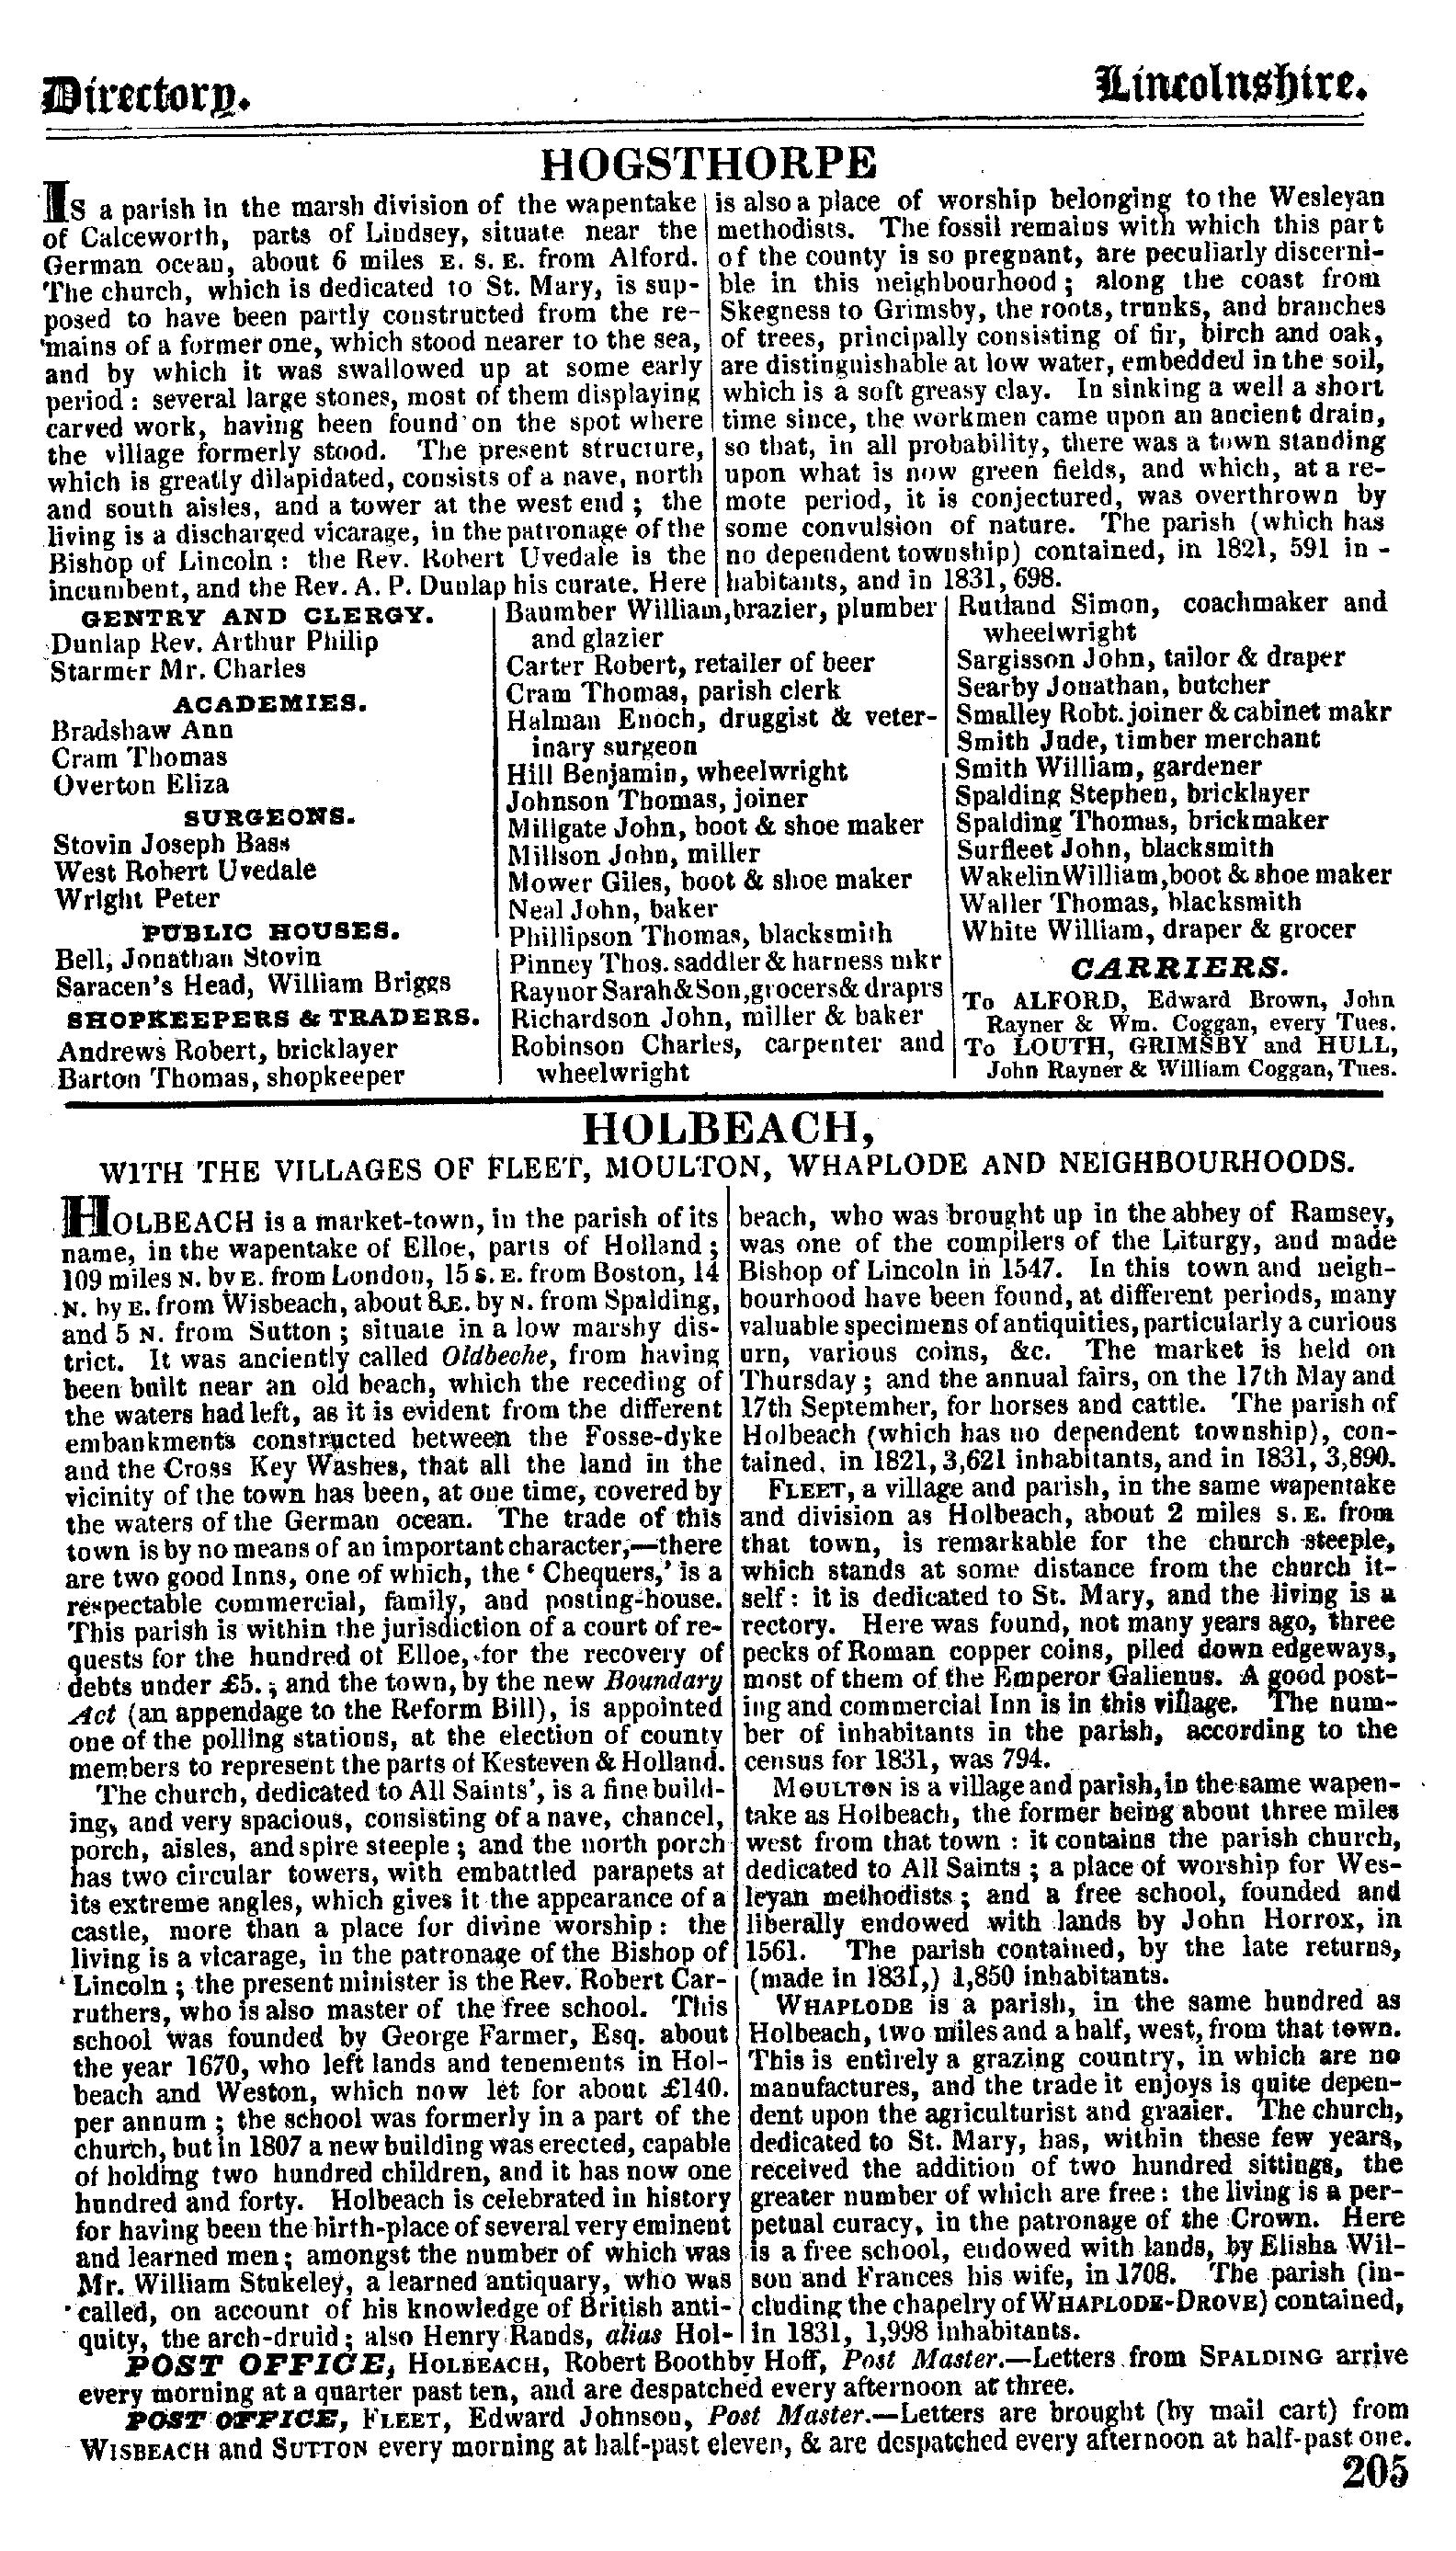 Pigot Directory of Lincolnshire, 1835 page 205 - click to open larger version in a new window